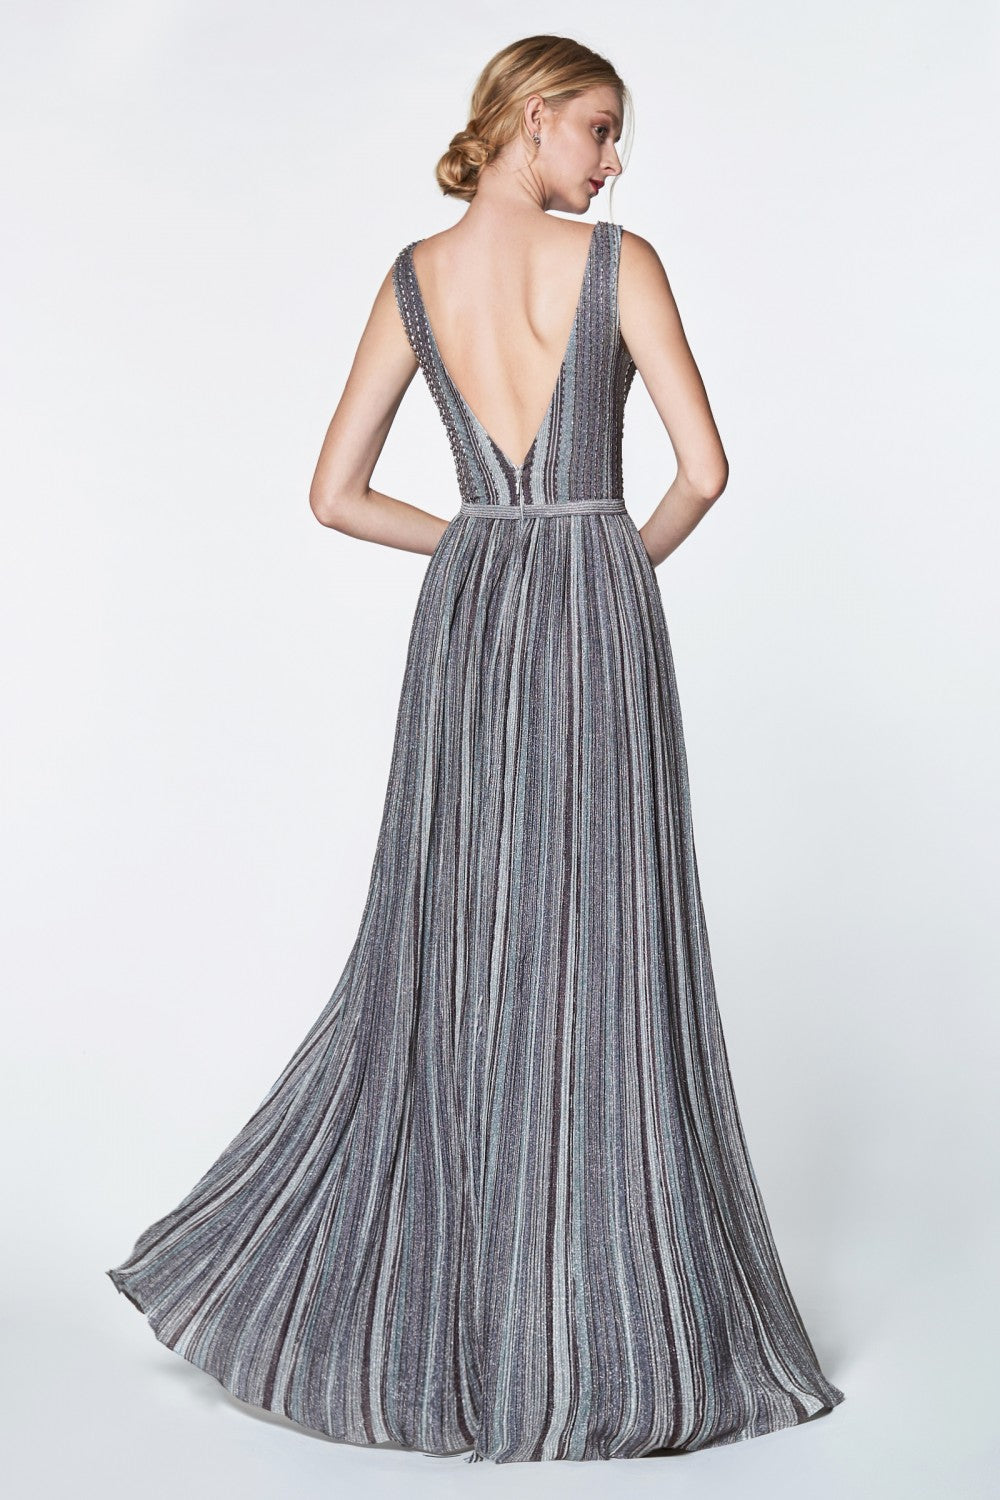 Striped Metallic A-Line Stretch Knit Sleeveless Gown With Deep V-Neckline, Open Back And Belt